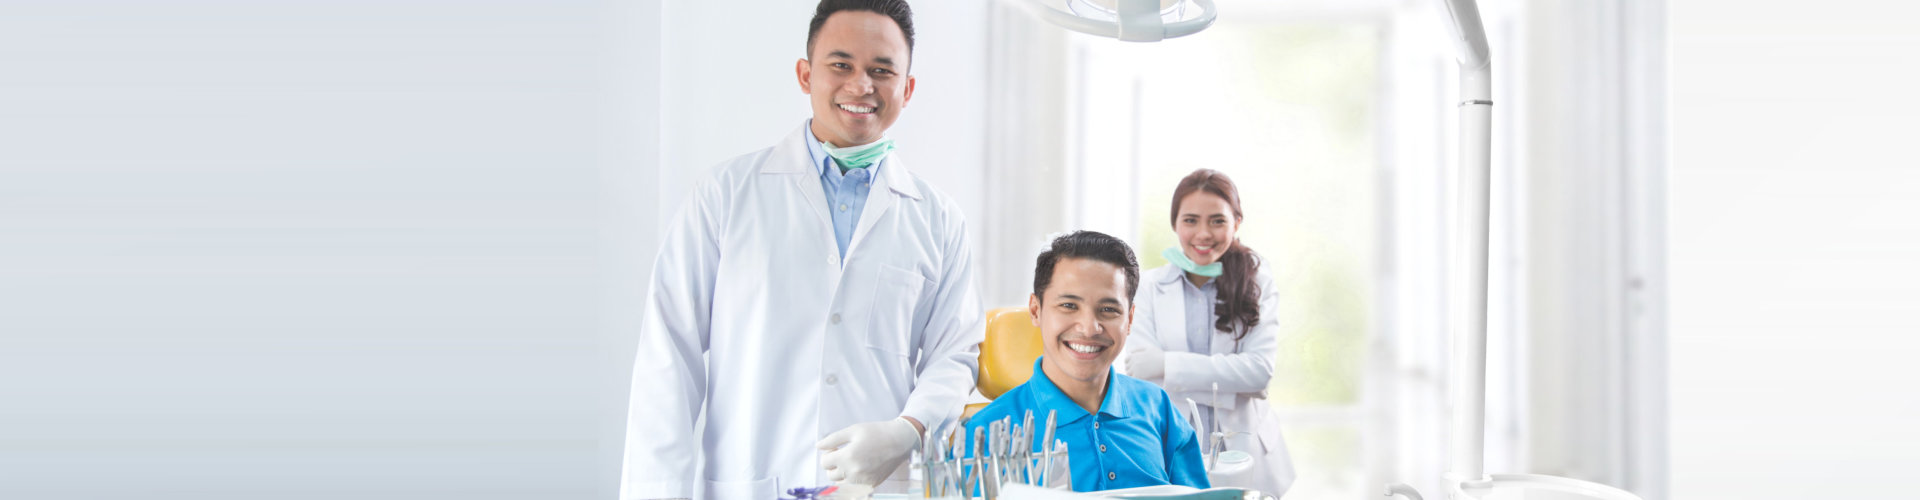 two doctors smiling with their patient